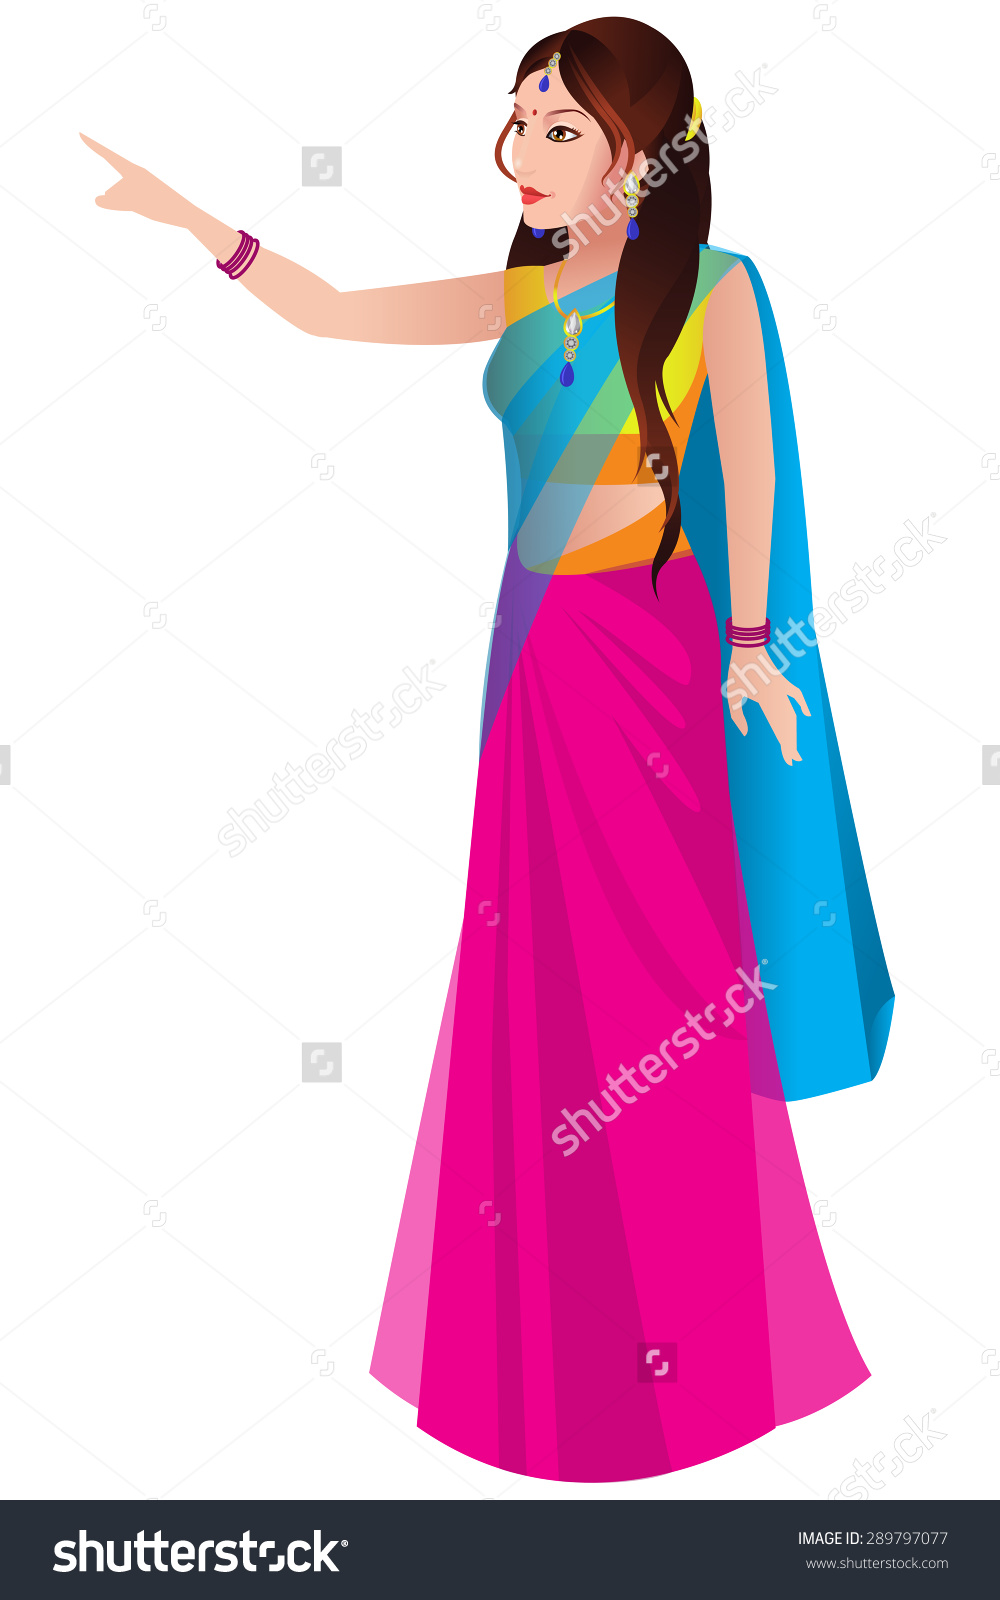 Traditional indian lady clipart jpg transparent library Traditional woman clipart - ClipartFest jpg transparent library